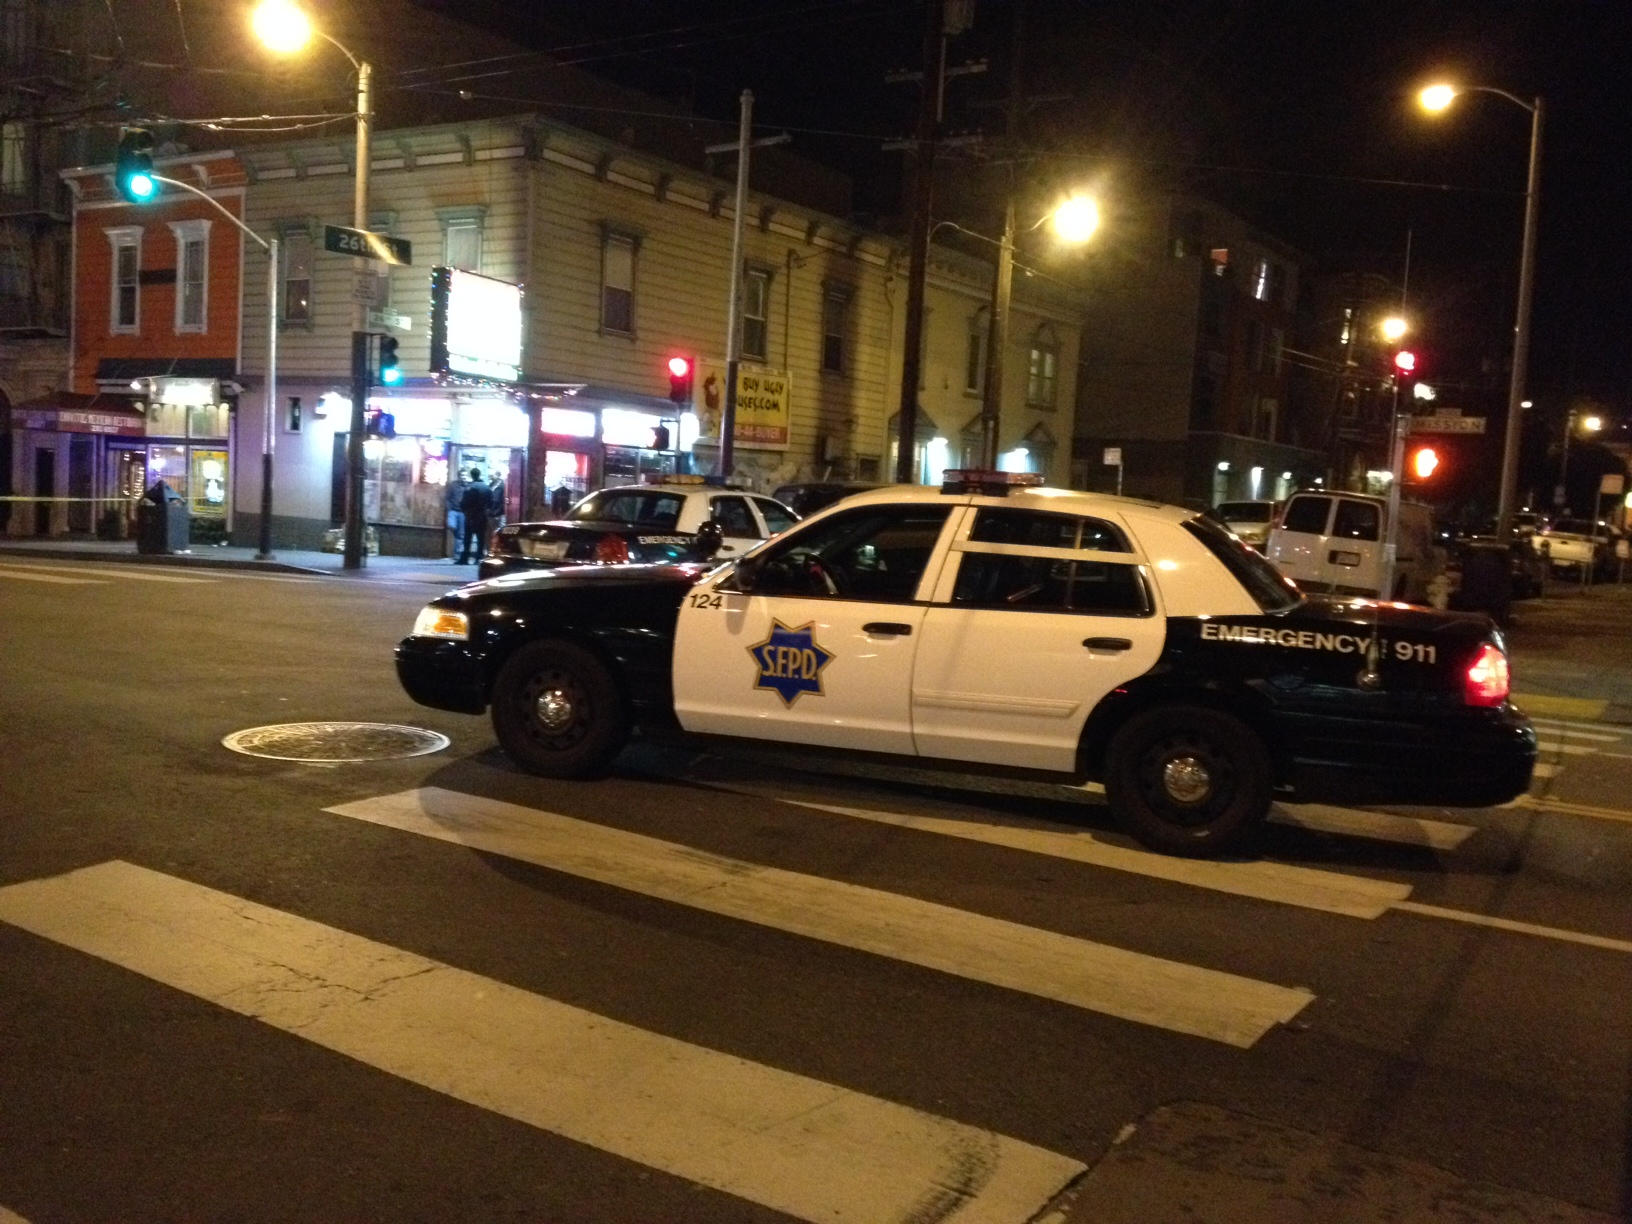 One Person Shot at 26th and Mission Sts.